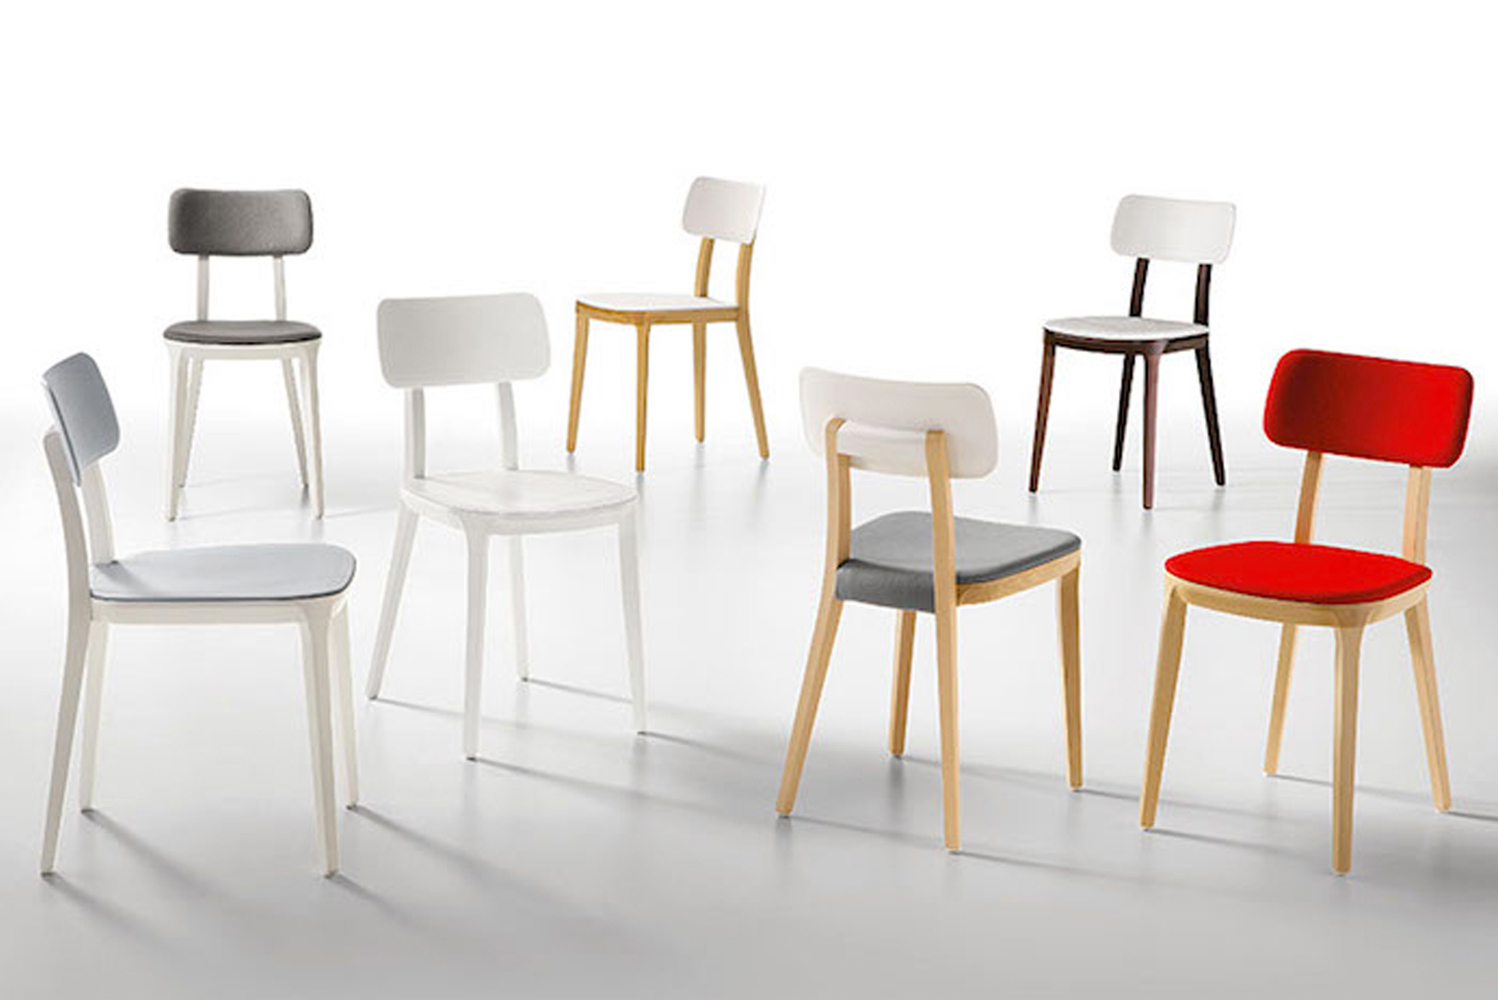 Jude is available in an array of finishes, including wood, color coordinate, plastic and paint.